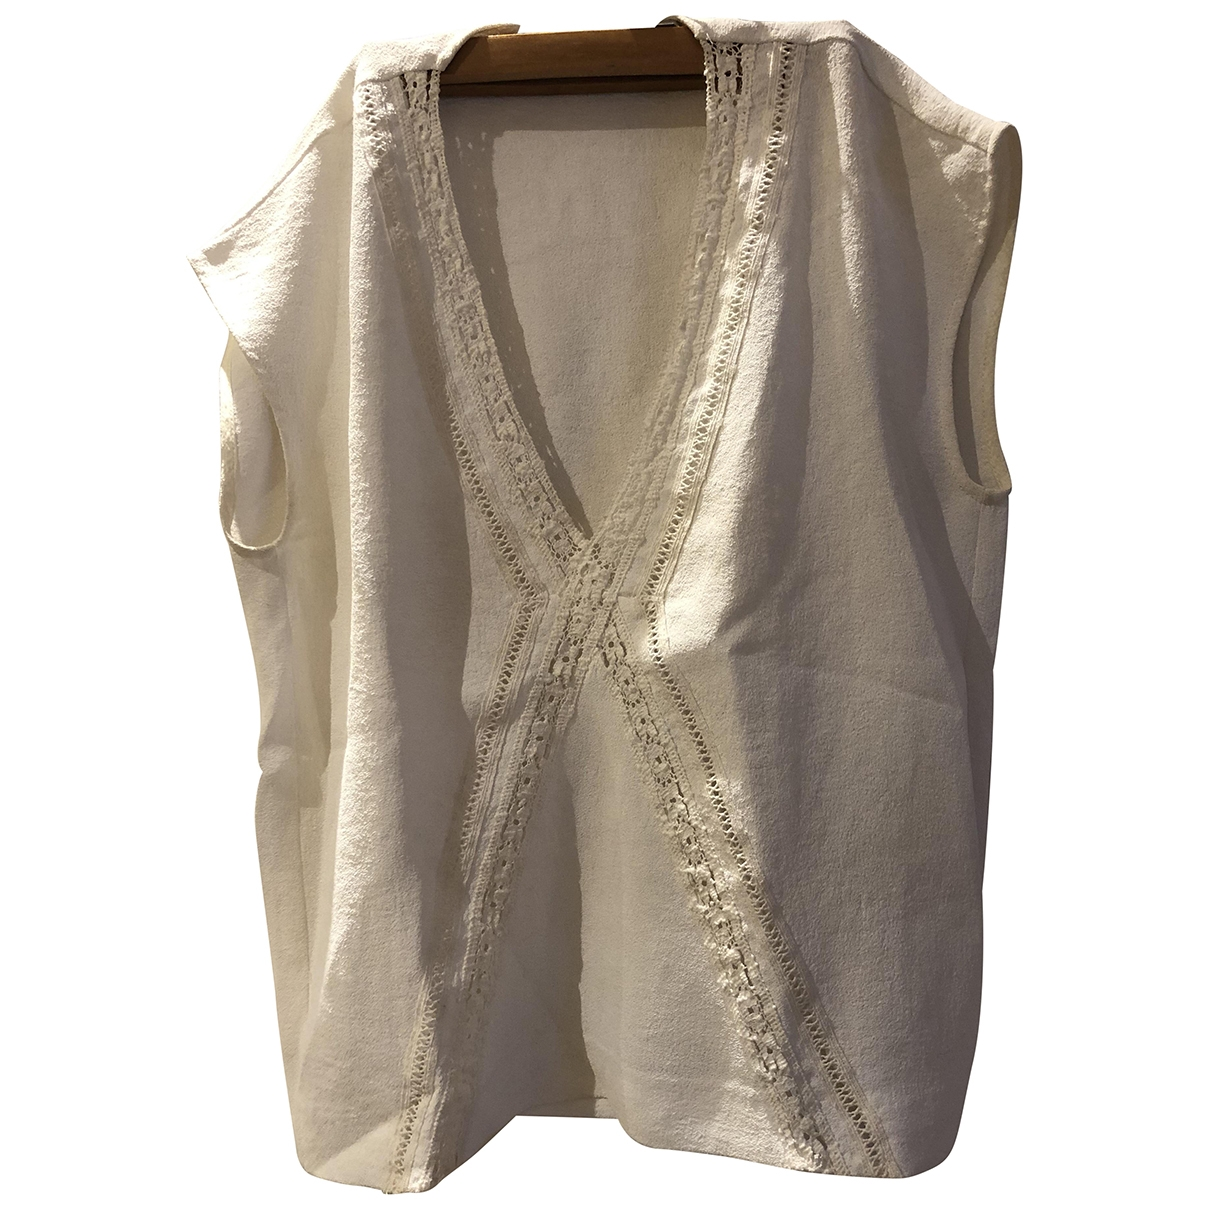 Maje \N White  top for Women 1 0-5